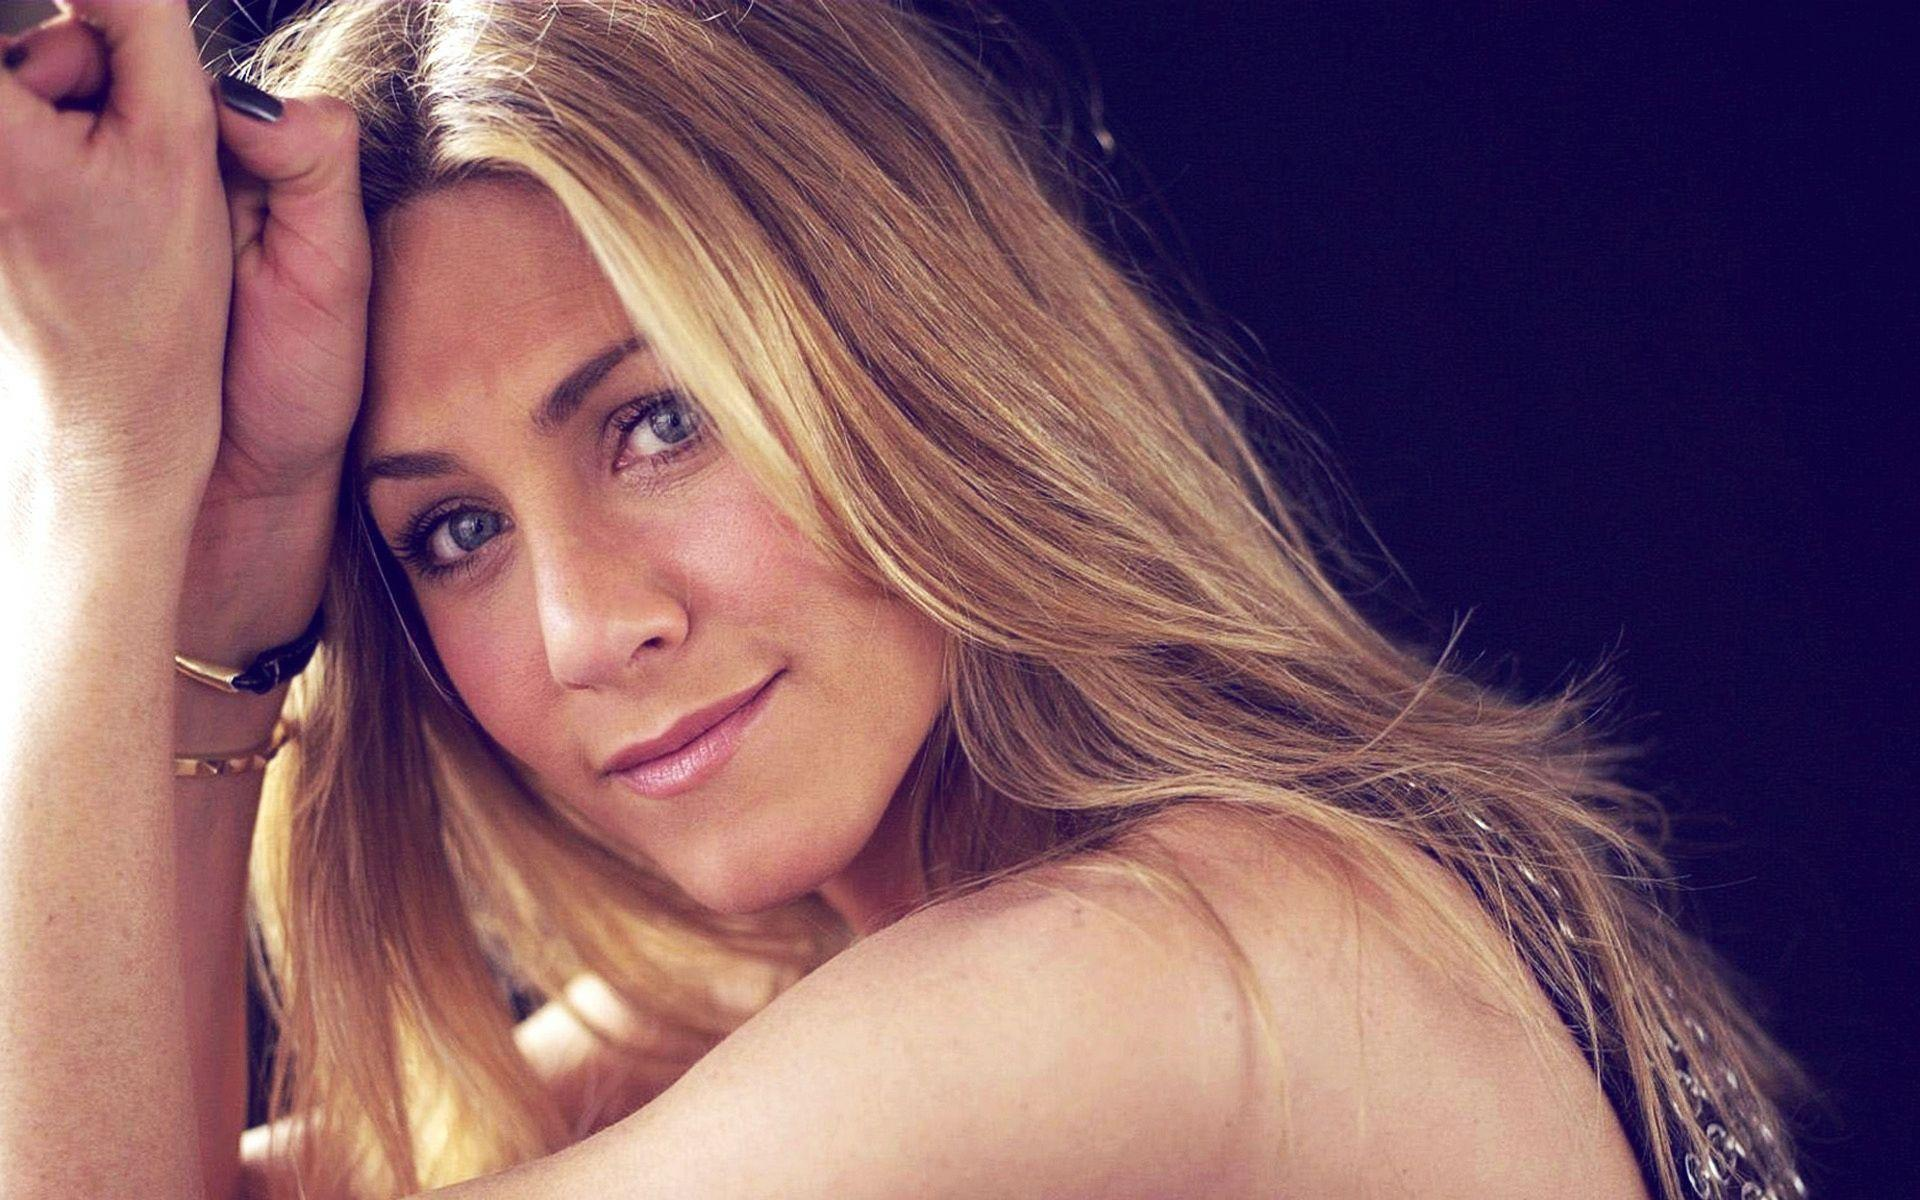 Jennifer Aniston Wallpapers - Page 1 - HD Wallpapers